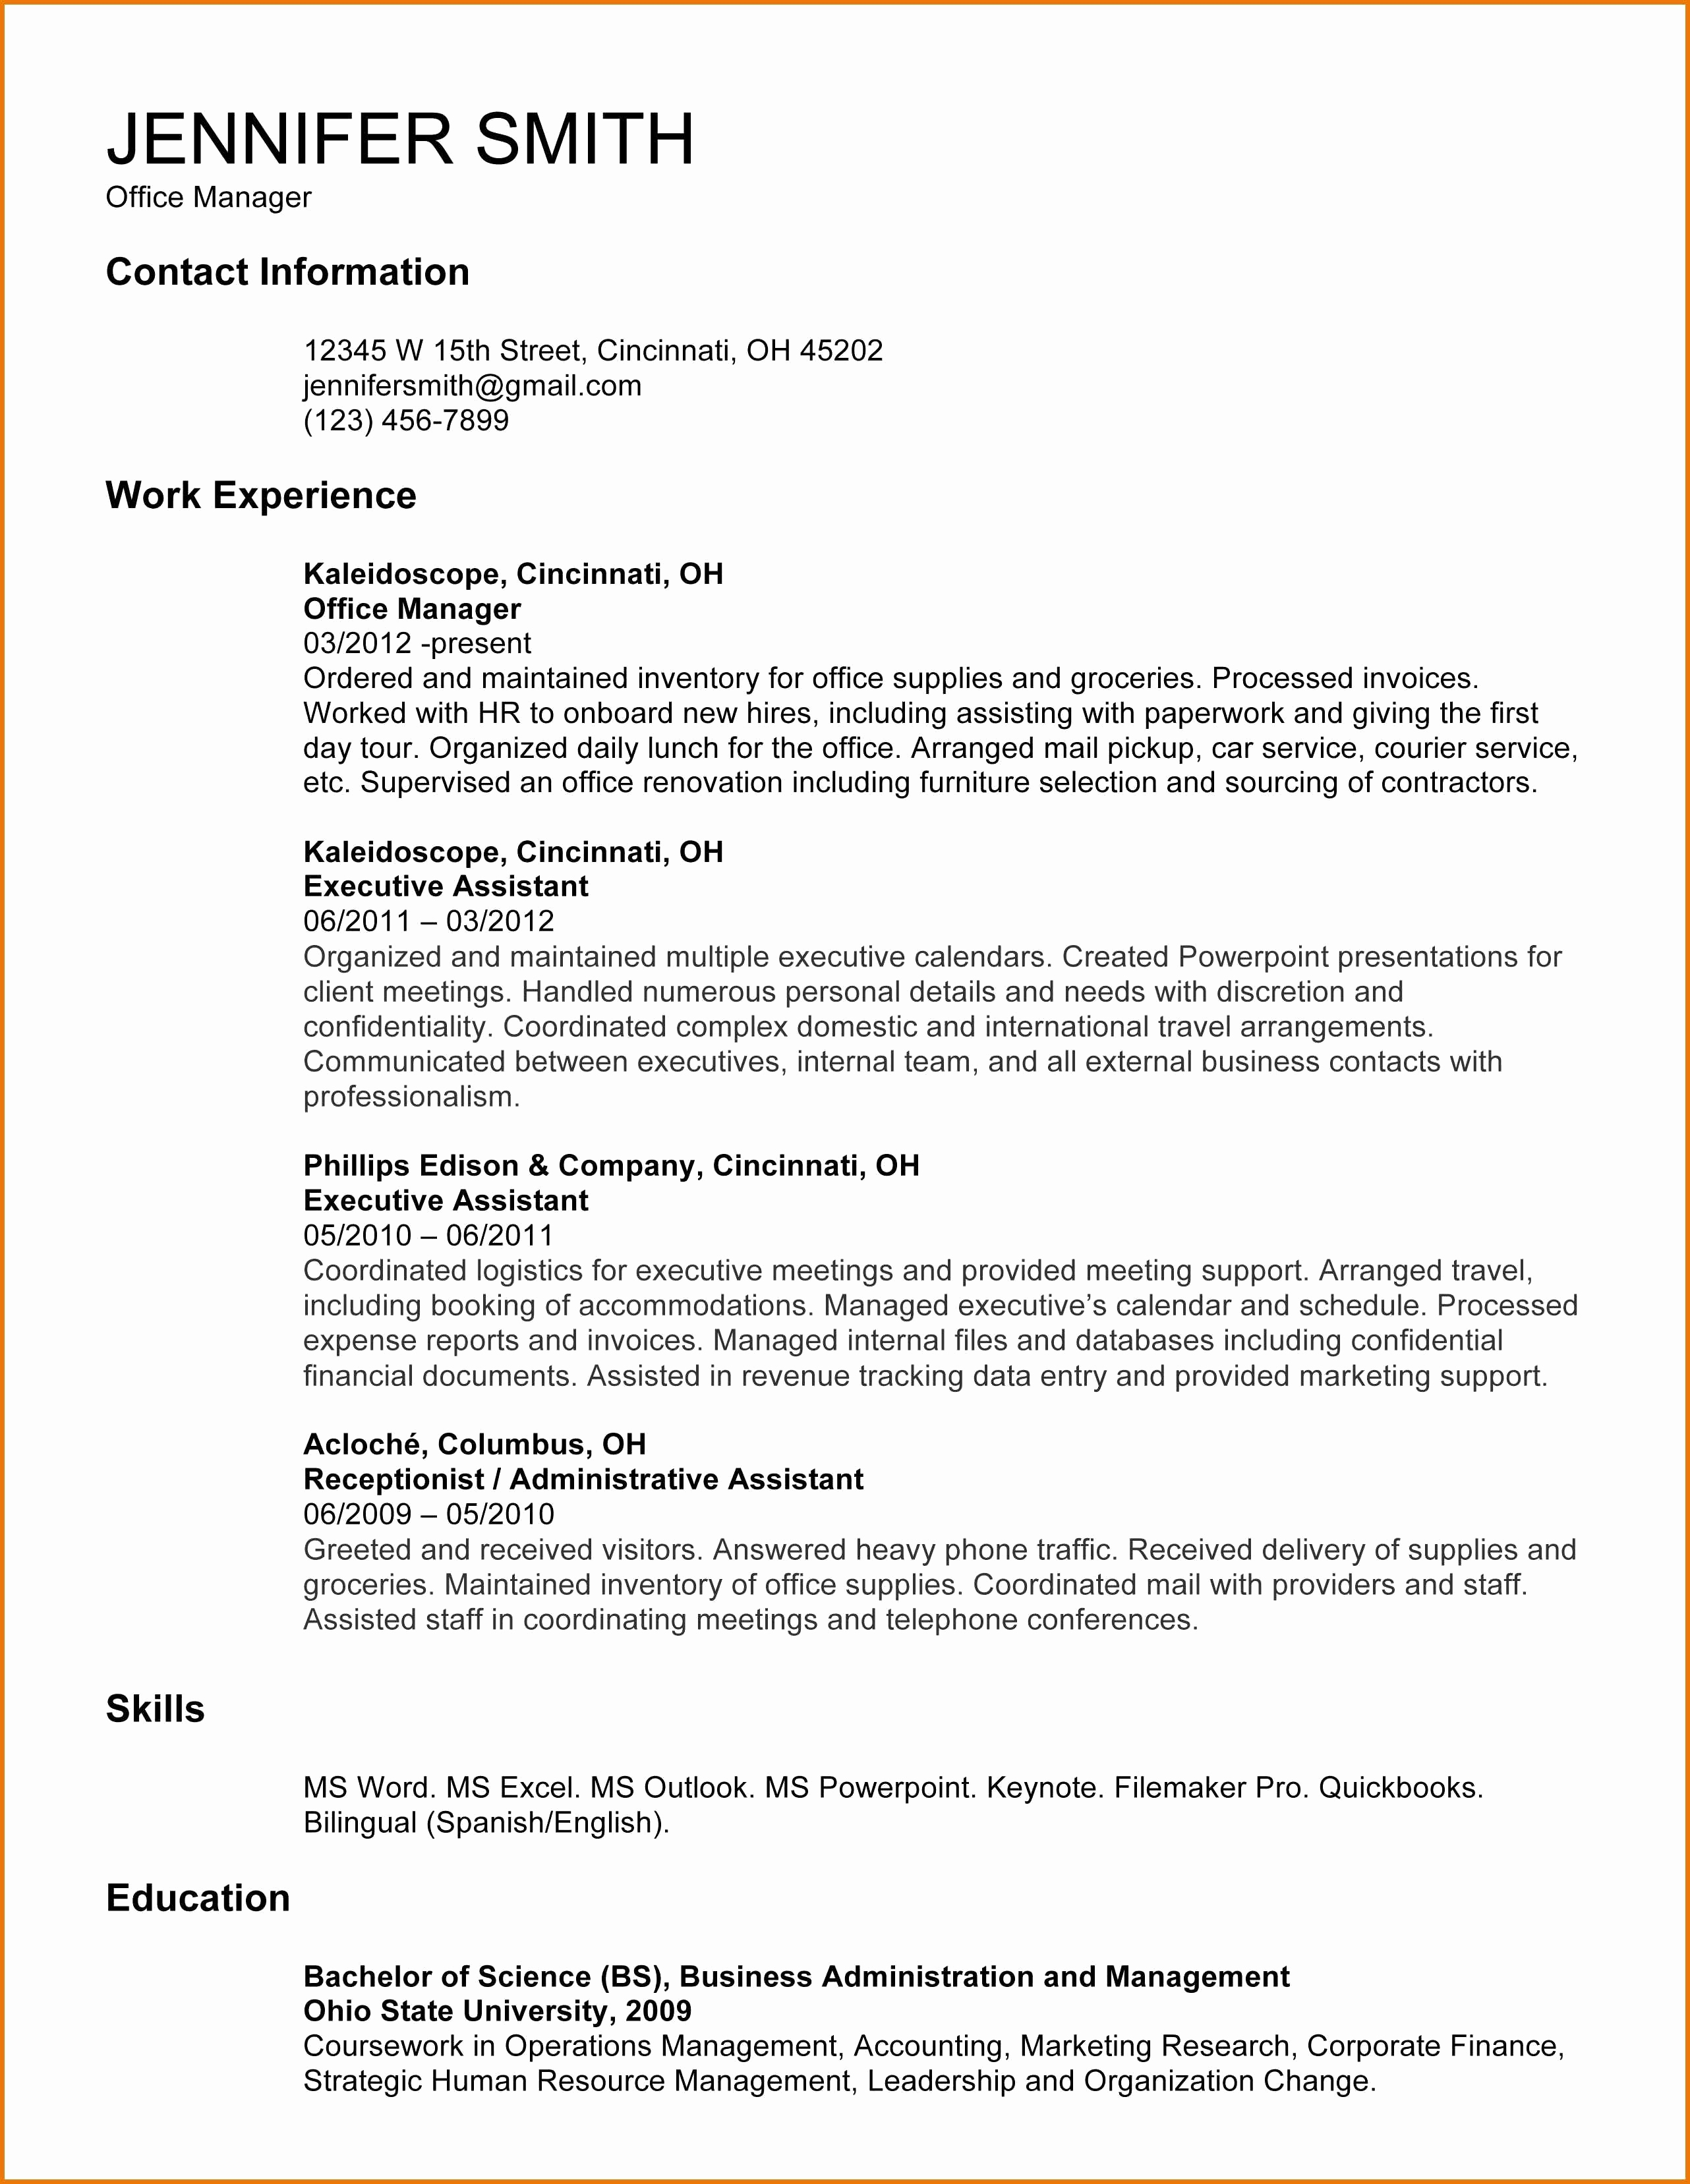 Hiring Letter Template - Best Resume and Cover Letter Template